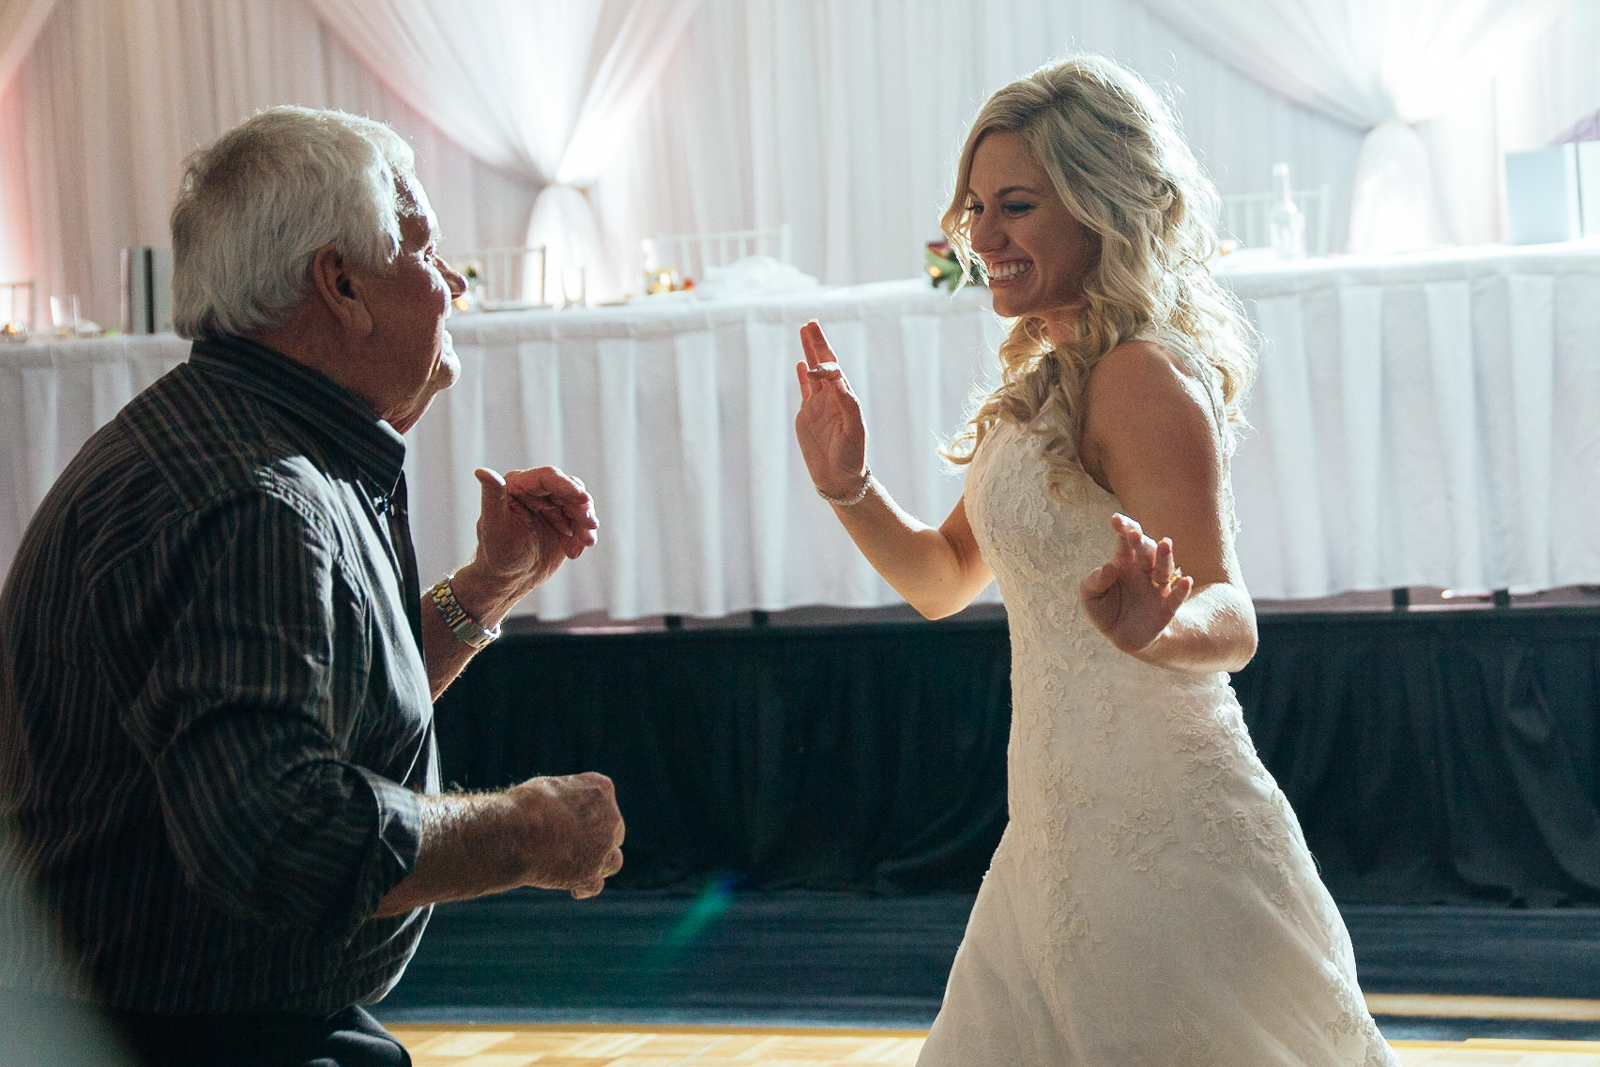 A Quick Father/Daughter Dance